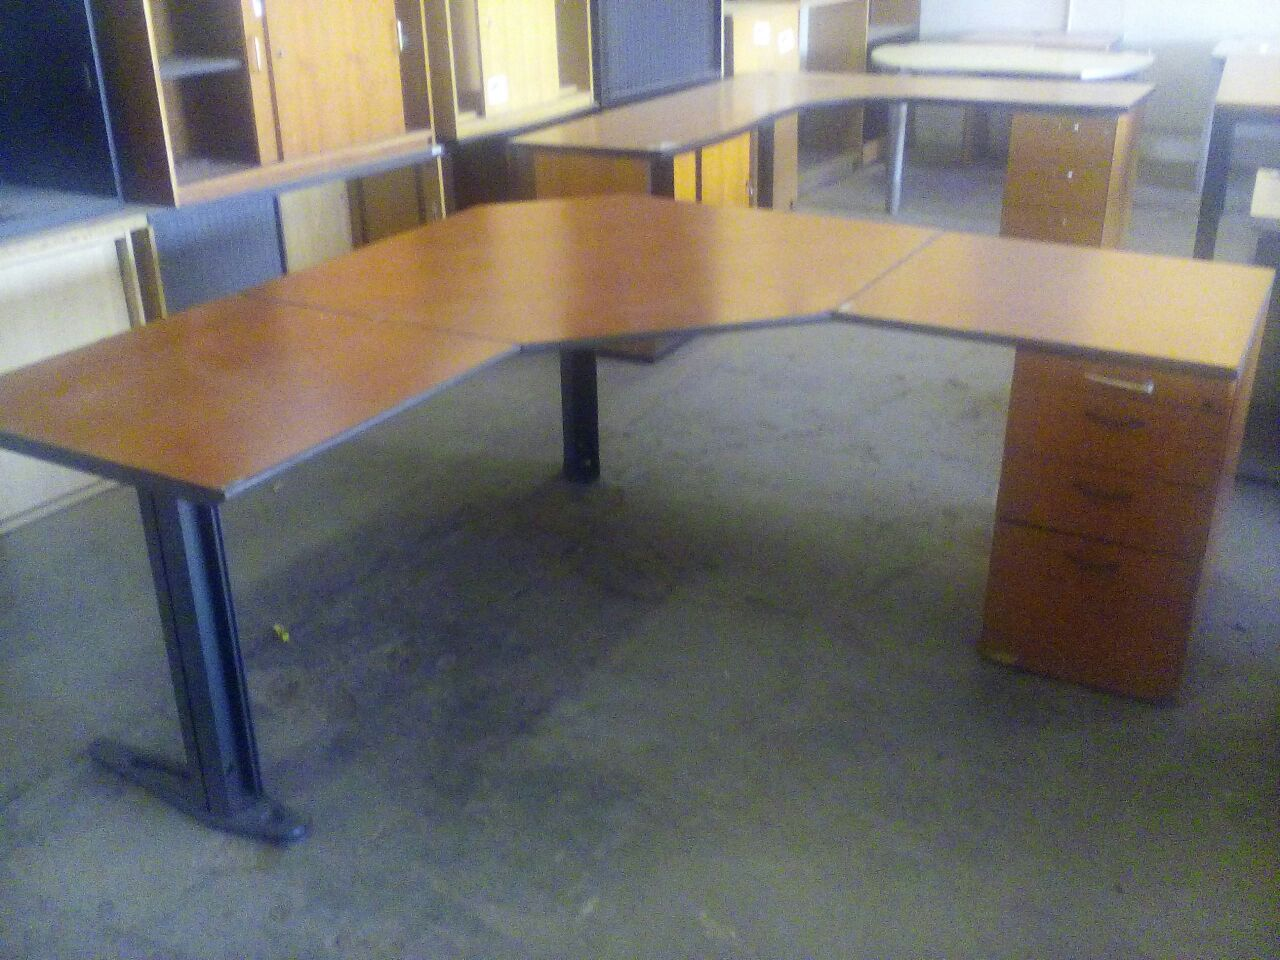 Auction on Office Desk and Chairs